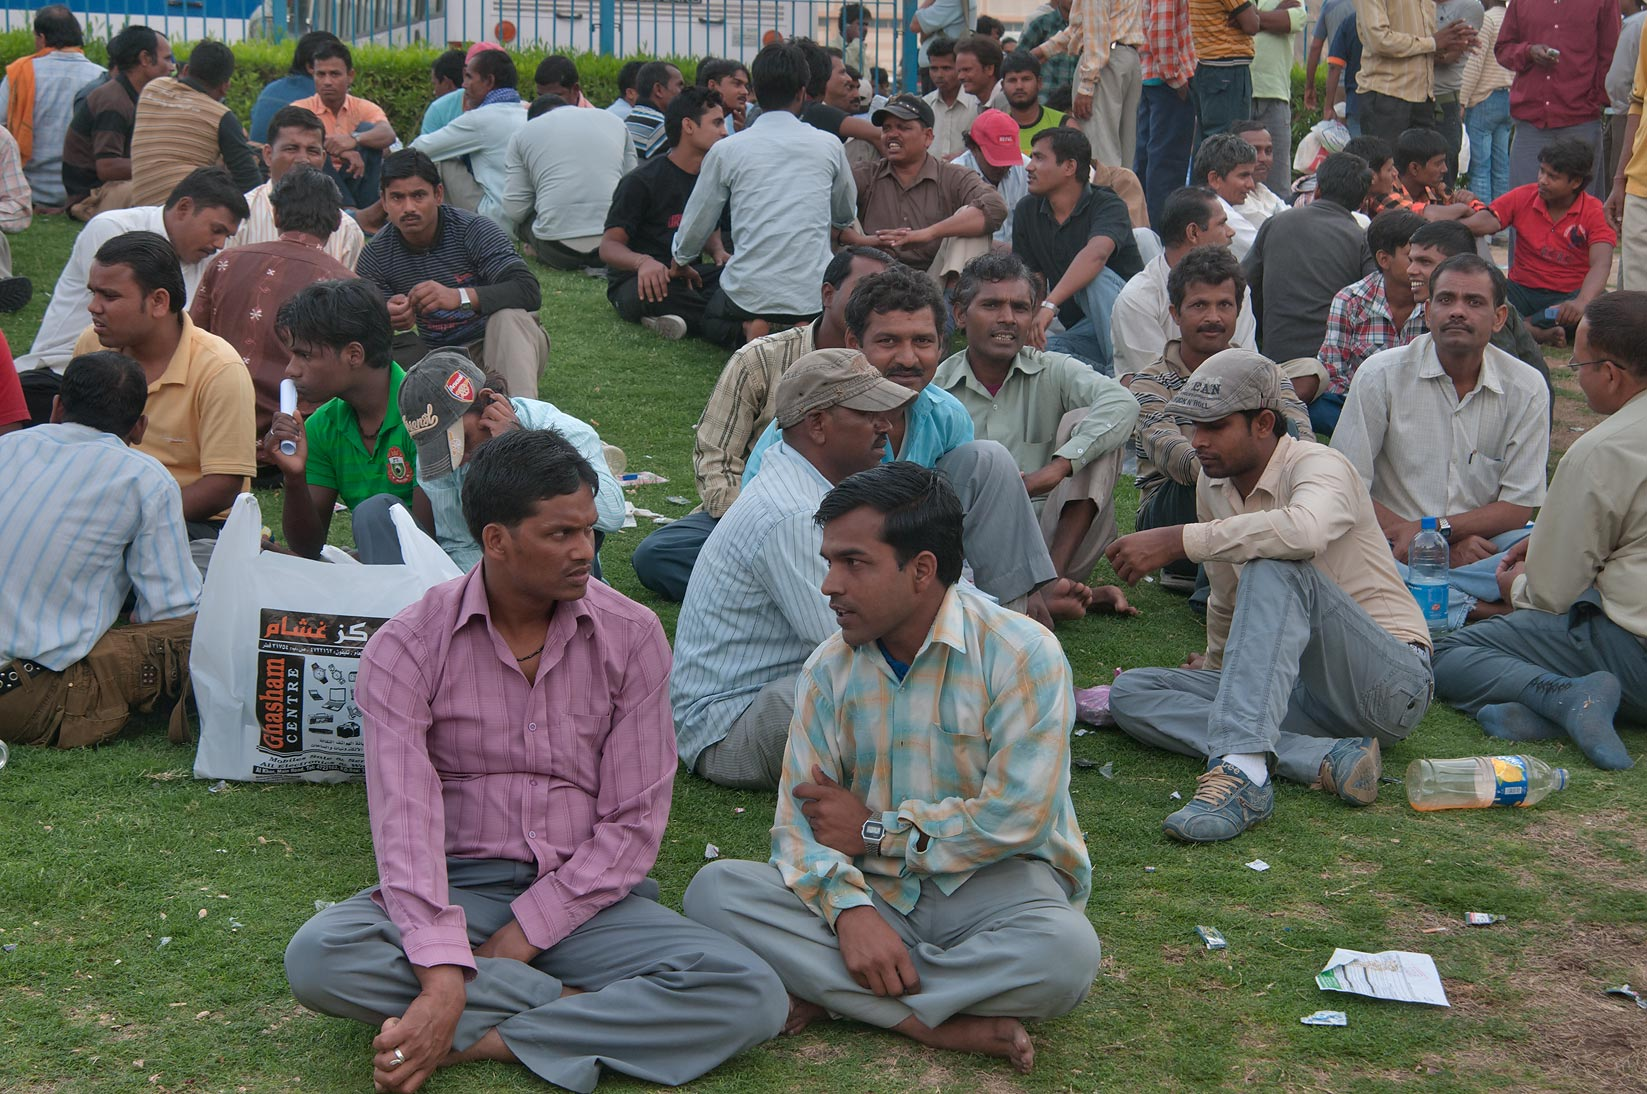 Migrant workers sitting on a lawn at Central Bus Station Al Ghanim on Friday. Doha, Qatar